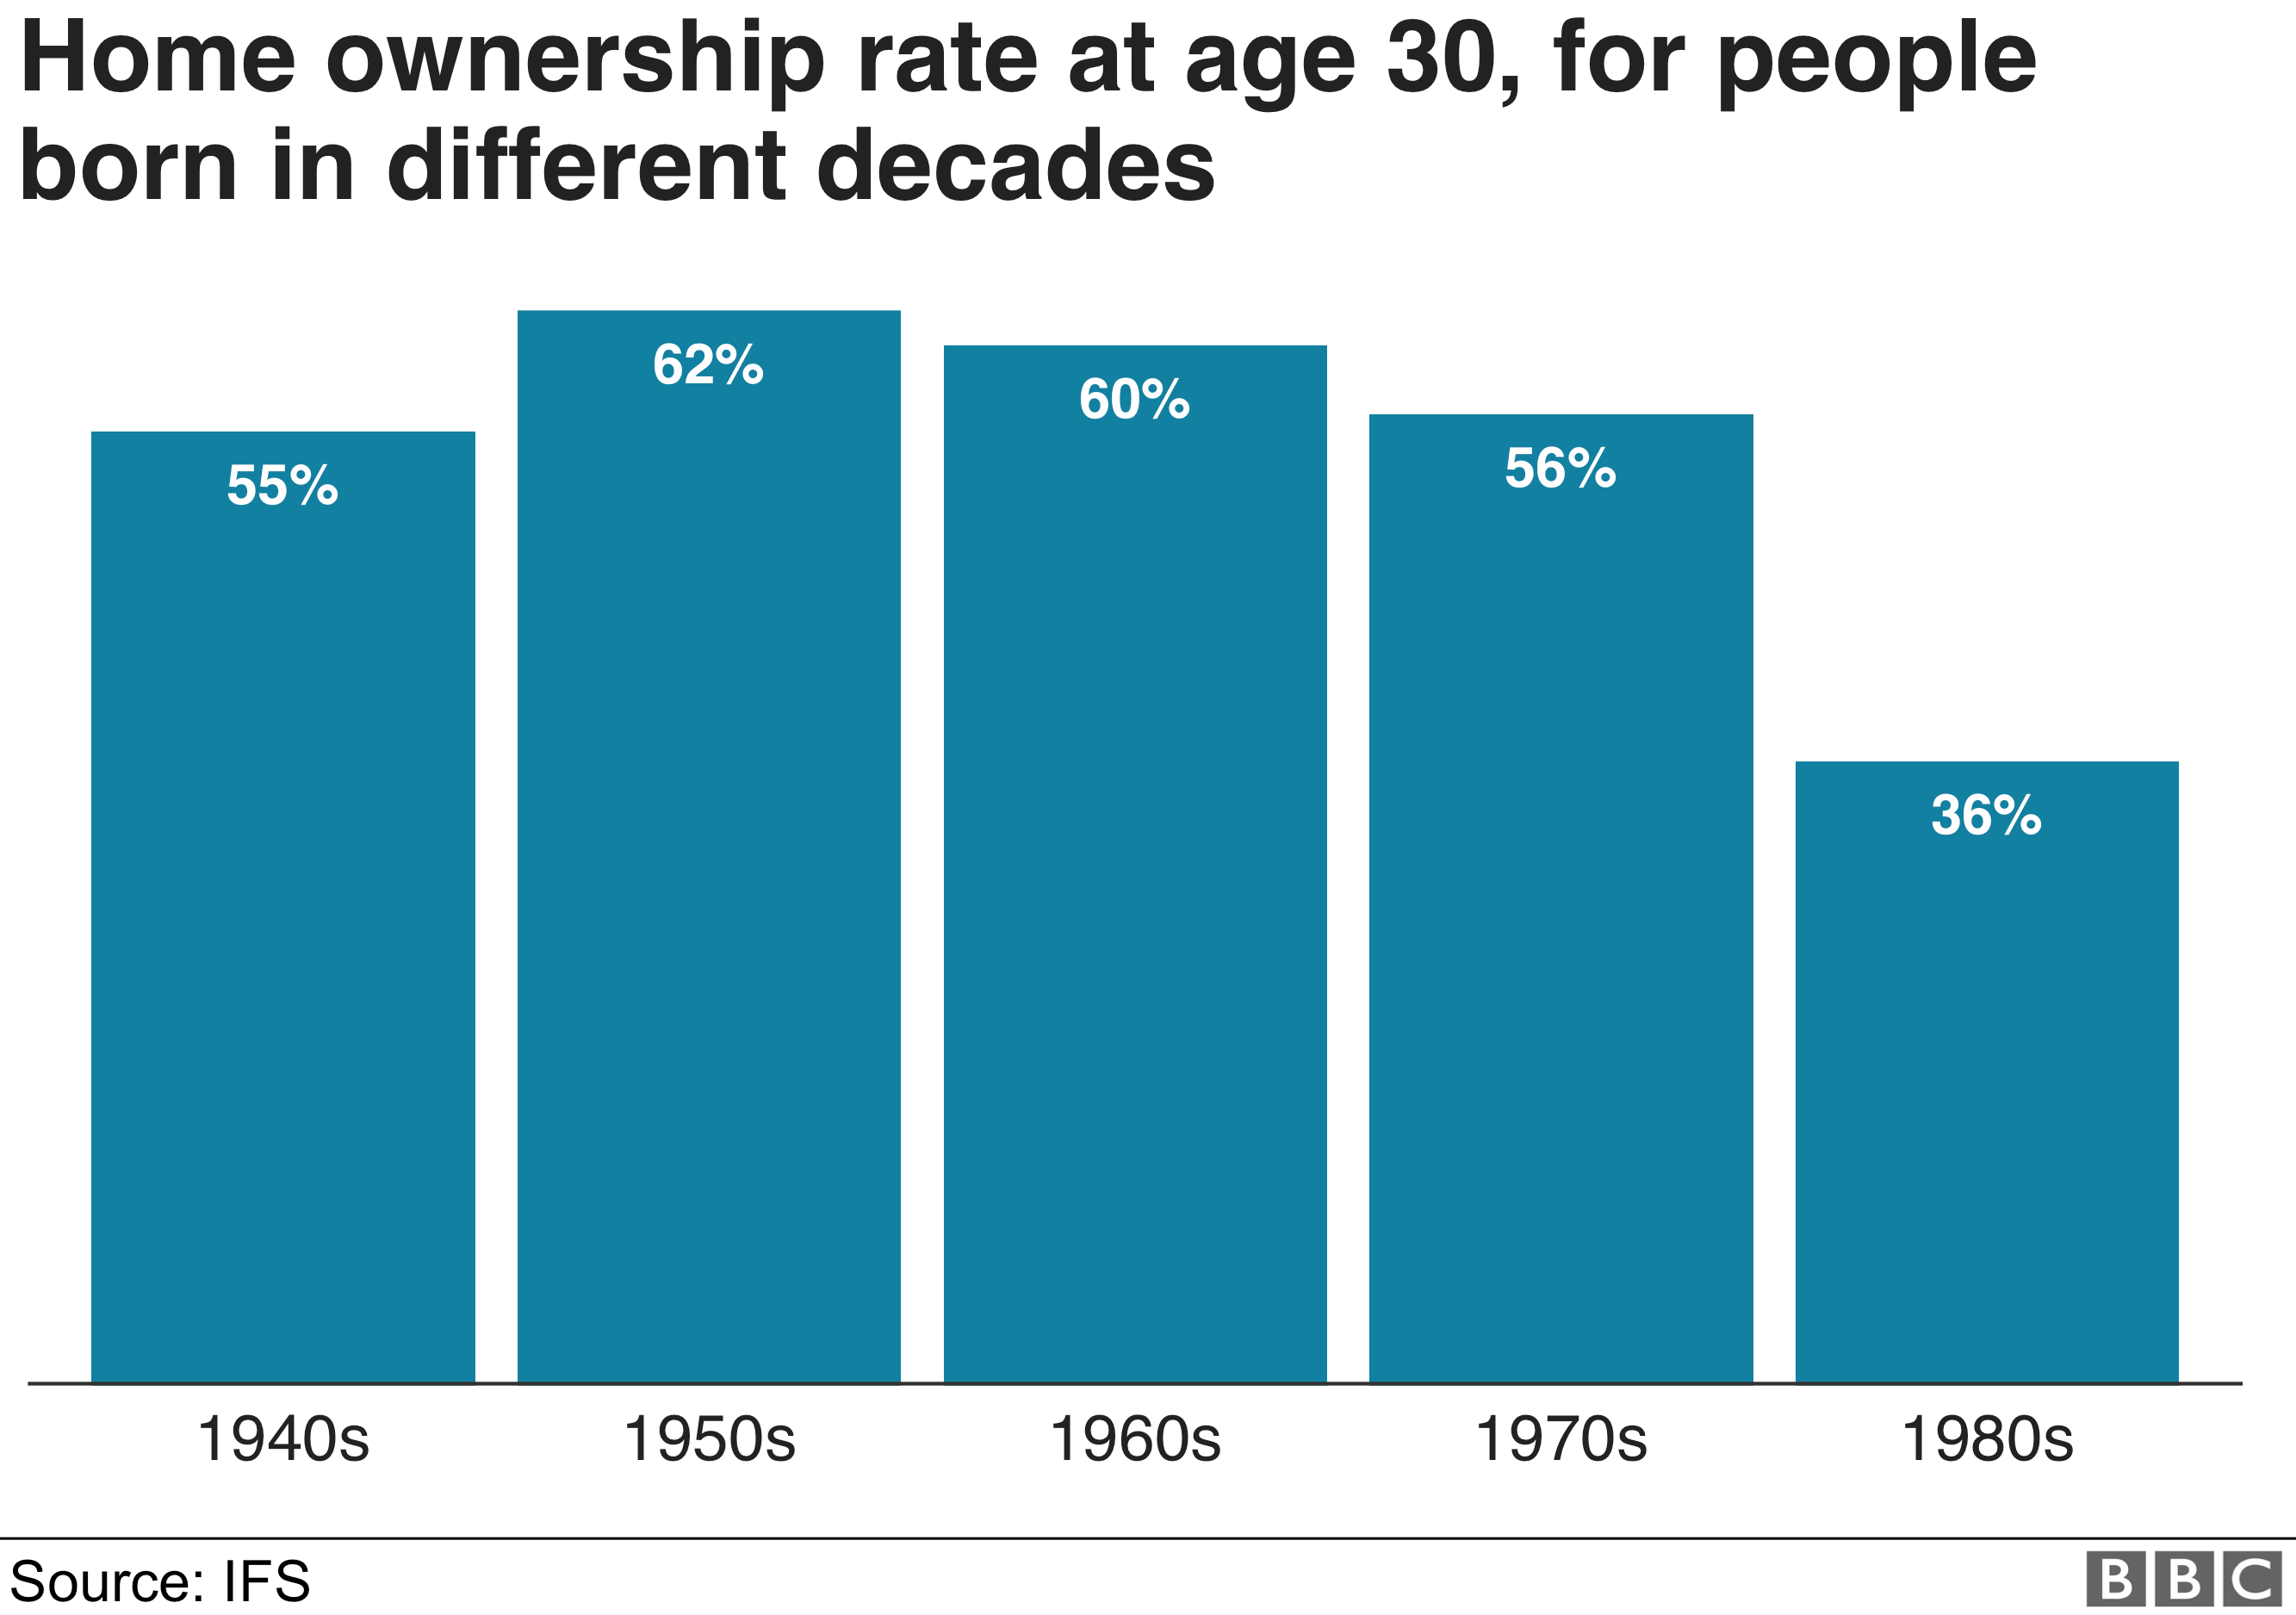 Chart entitled: Home ownership at age 30, for people born in different decades - shows how those born in the 1950s, 62% owned a house at the age of 30. For those born in the 1980s, that figure is 36%